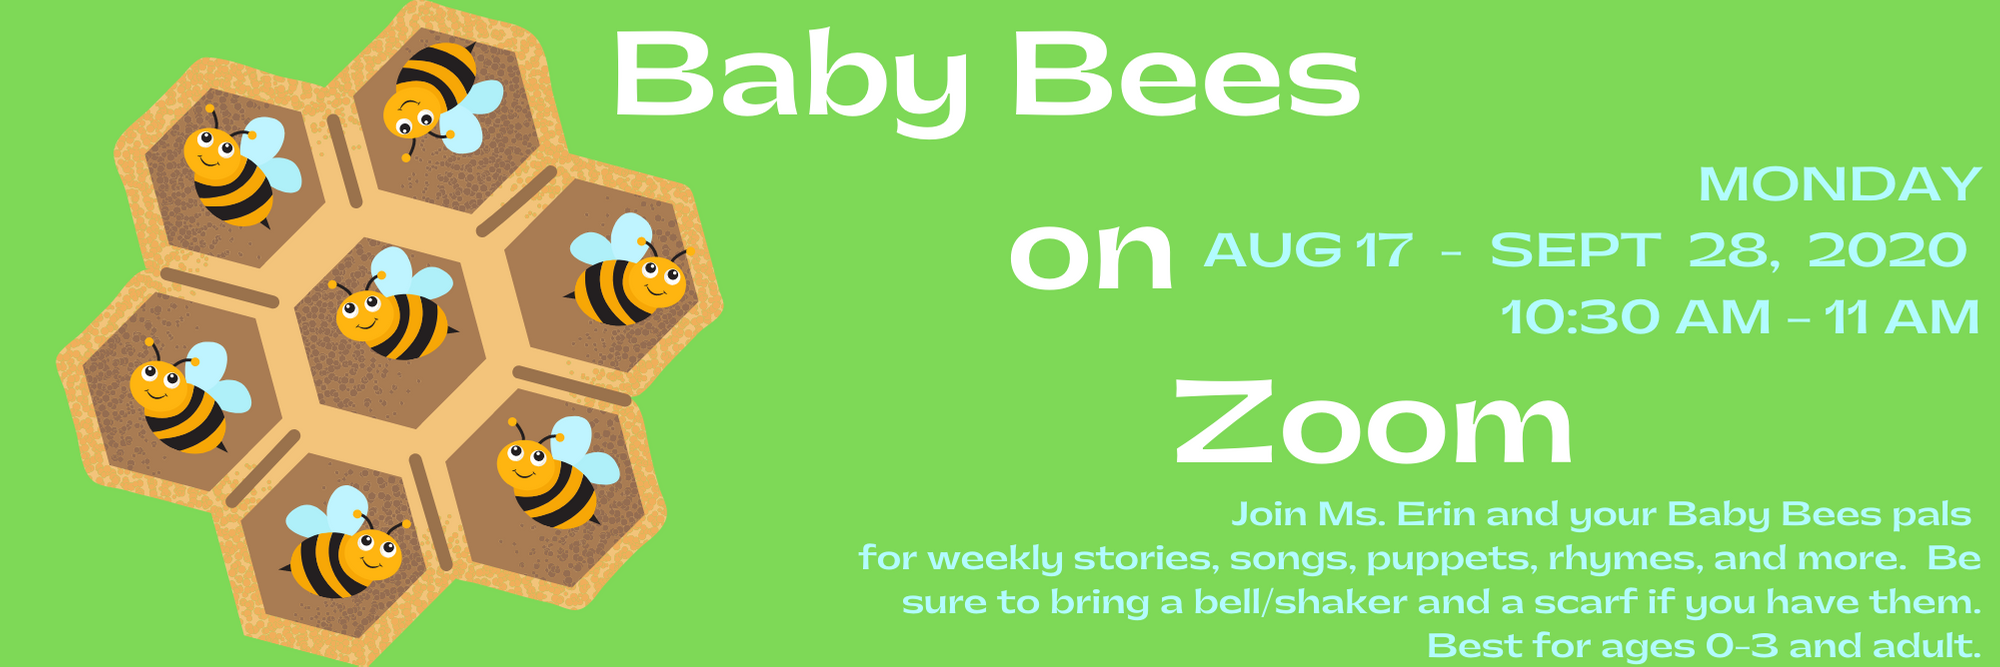 Baby Bees on Zoom Monday's August 17 thru September 28 2020. 10:30 am - 11 am Join Ms. Erin and your Baby Bees pals for weekly stories, songs, puppets, rhymes, and more. Be sure to bring a bell/shaker and a scarf if you have them. Best for ages 0-3 and adult.